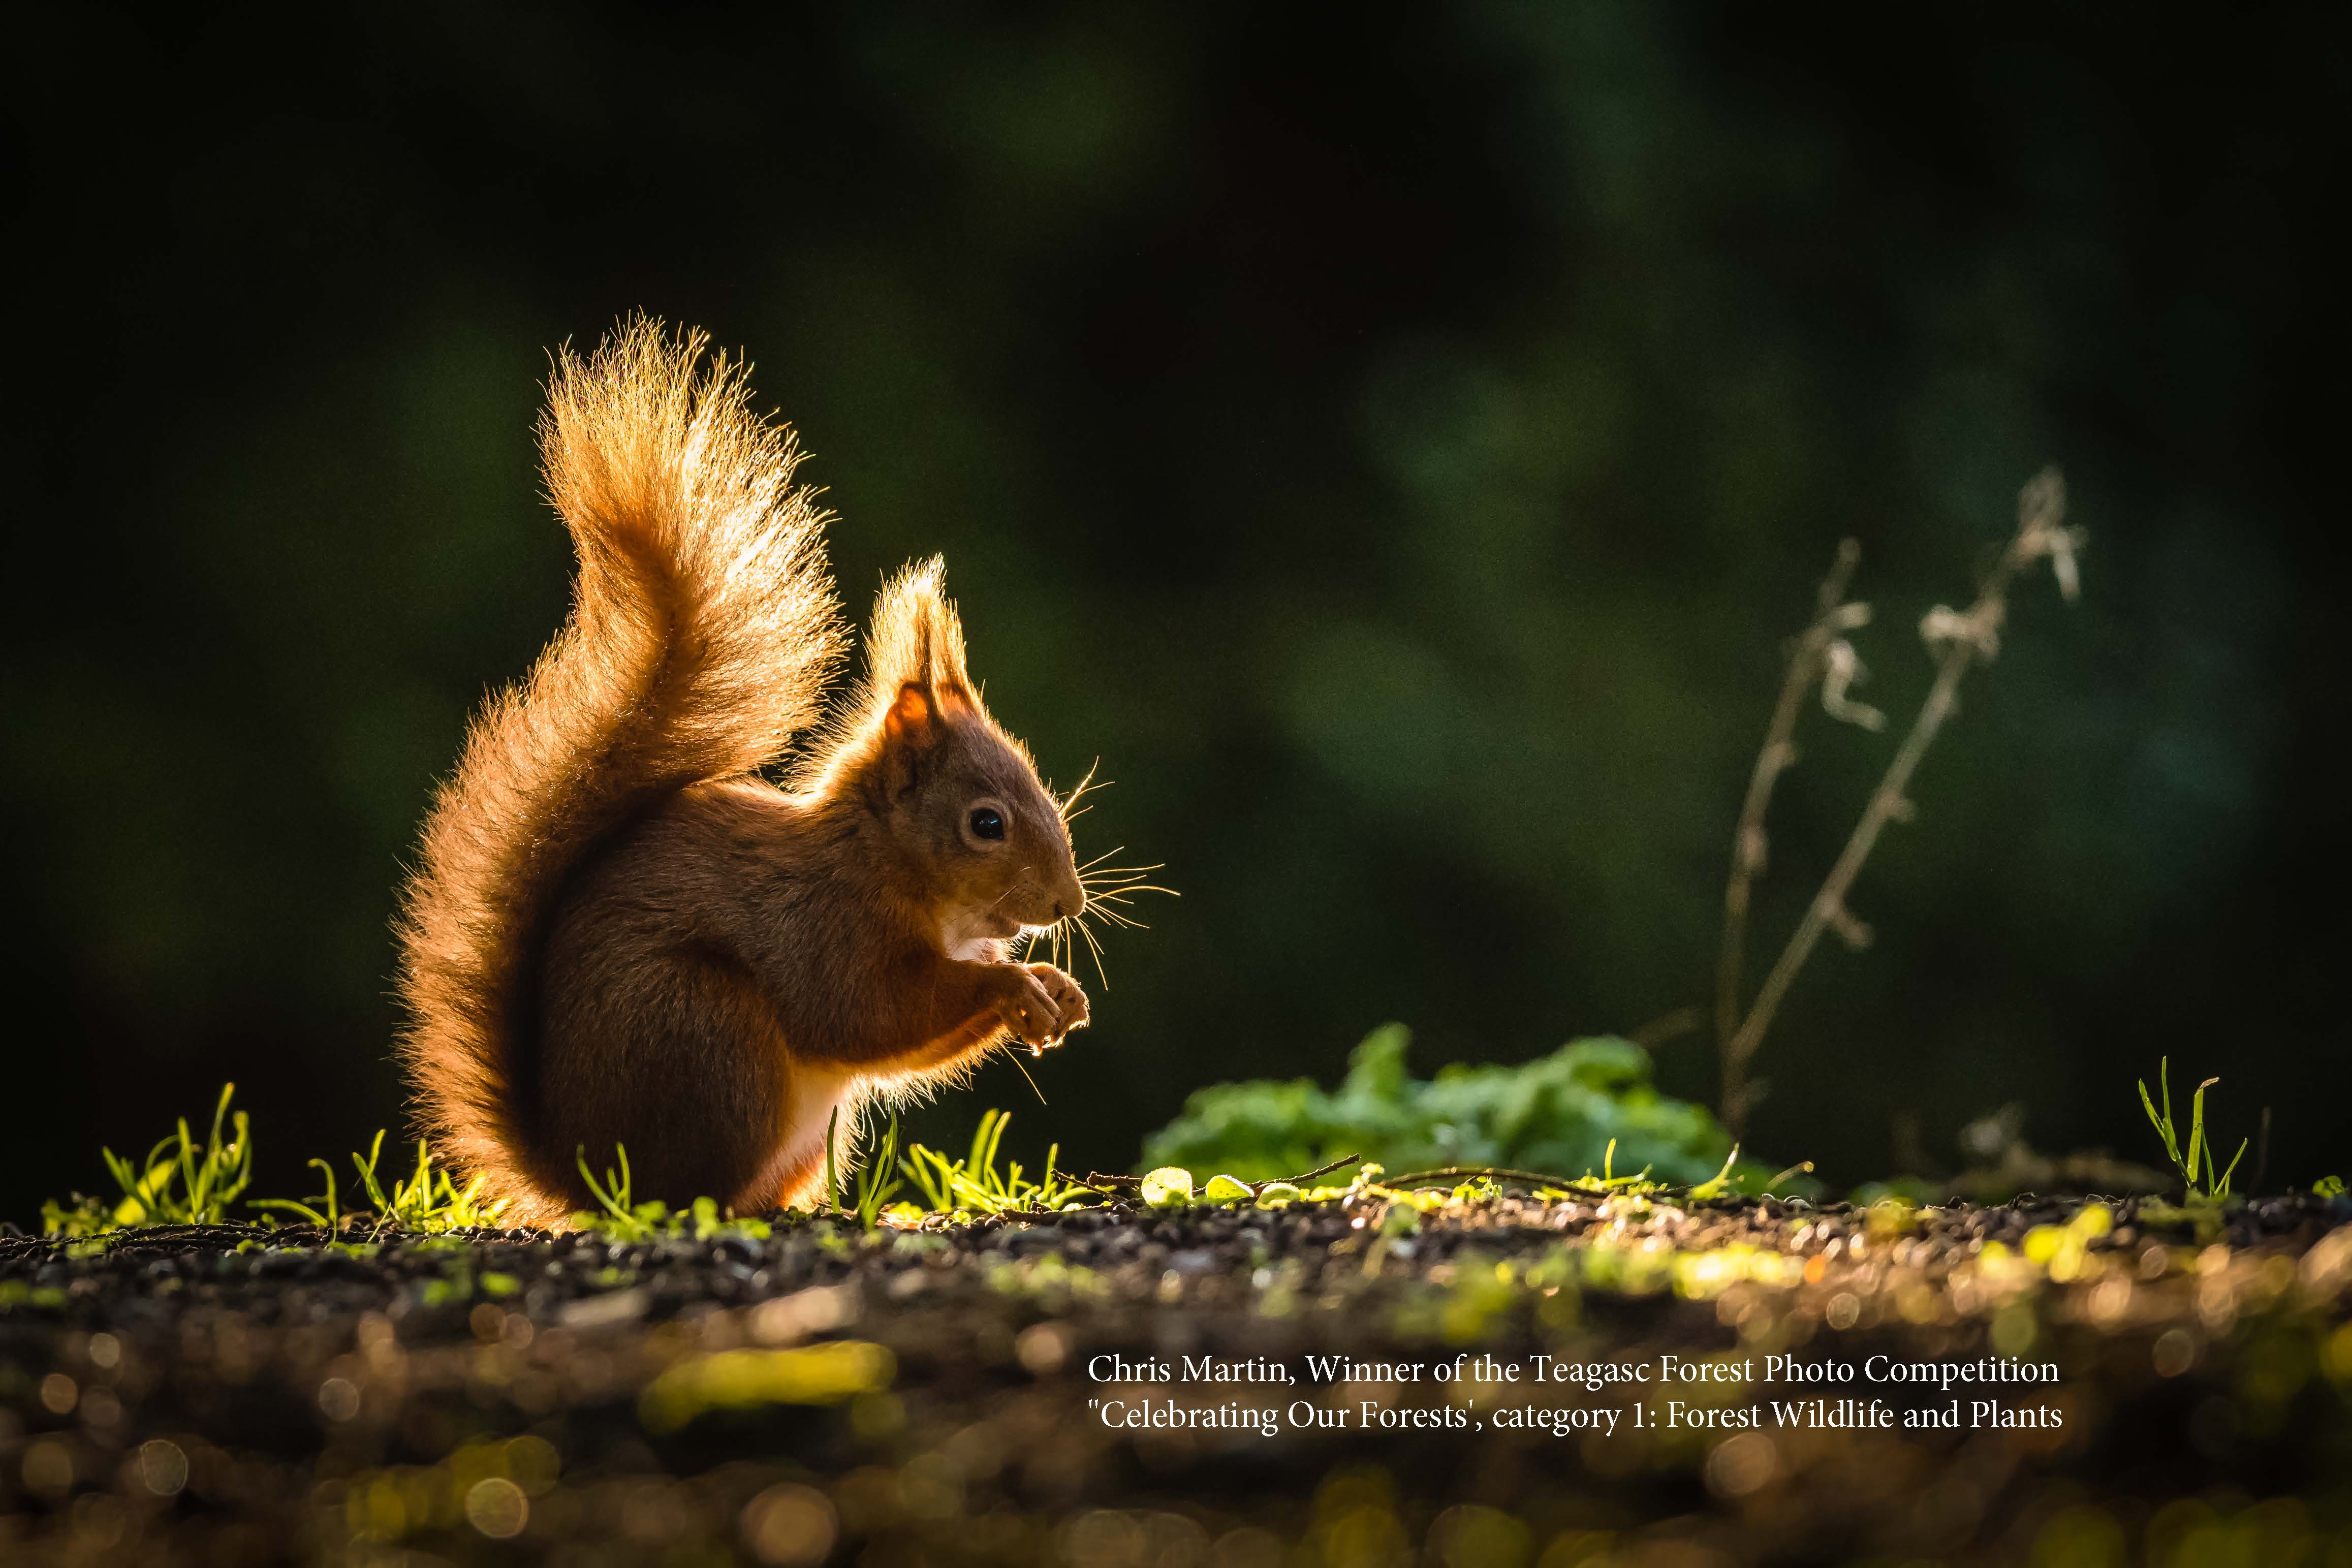 Winner of 'Forest Wildlife and Plants' Category of Teagasc Forest Photo Competition Announced